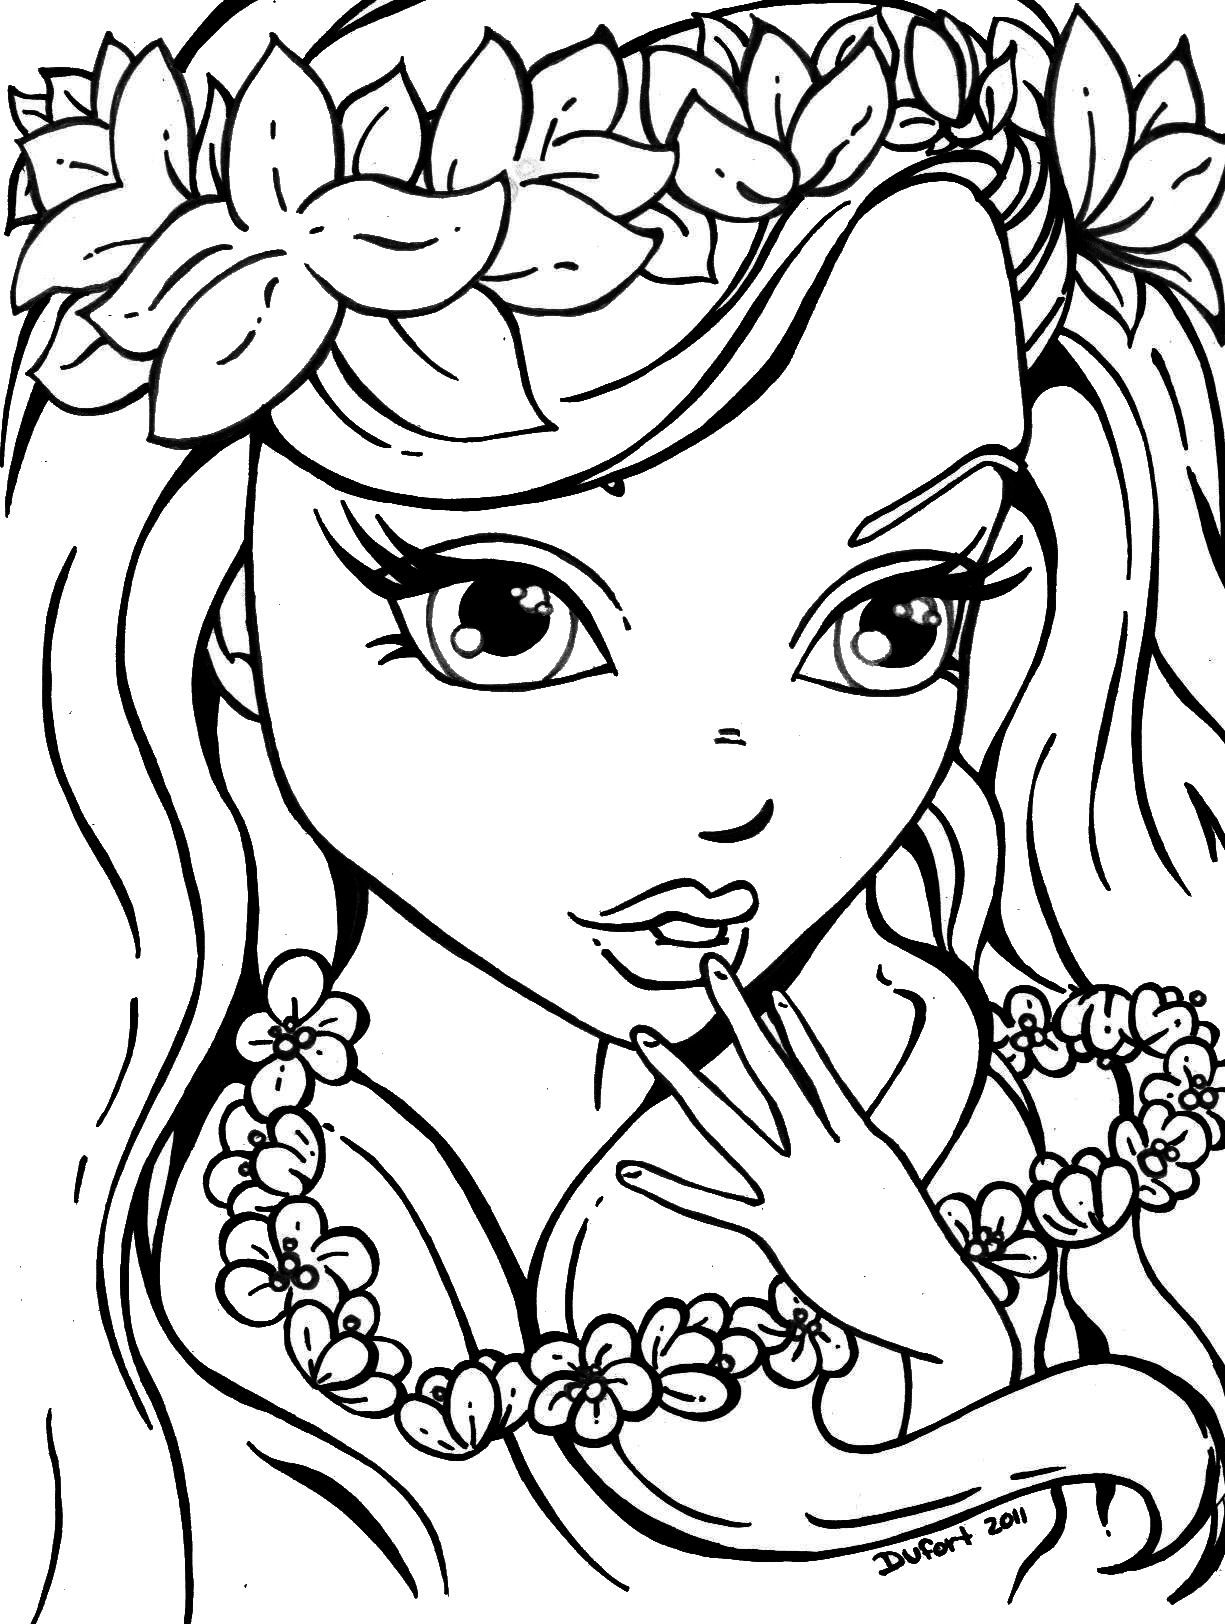 girl printable coloring pages flowers_girl | stamps, coloring pages | Coloring pages, Coloring  girl printable coloring pages